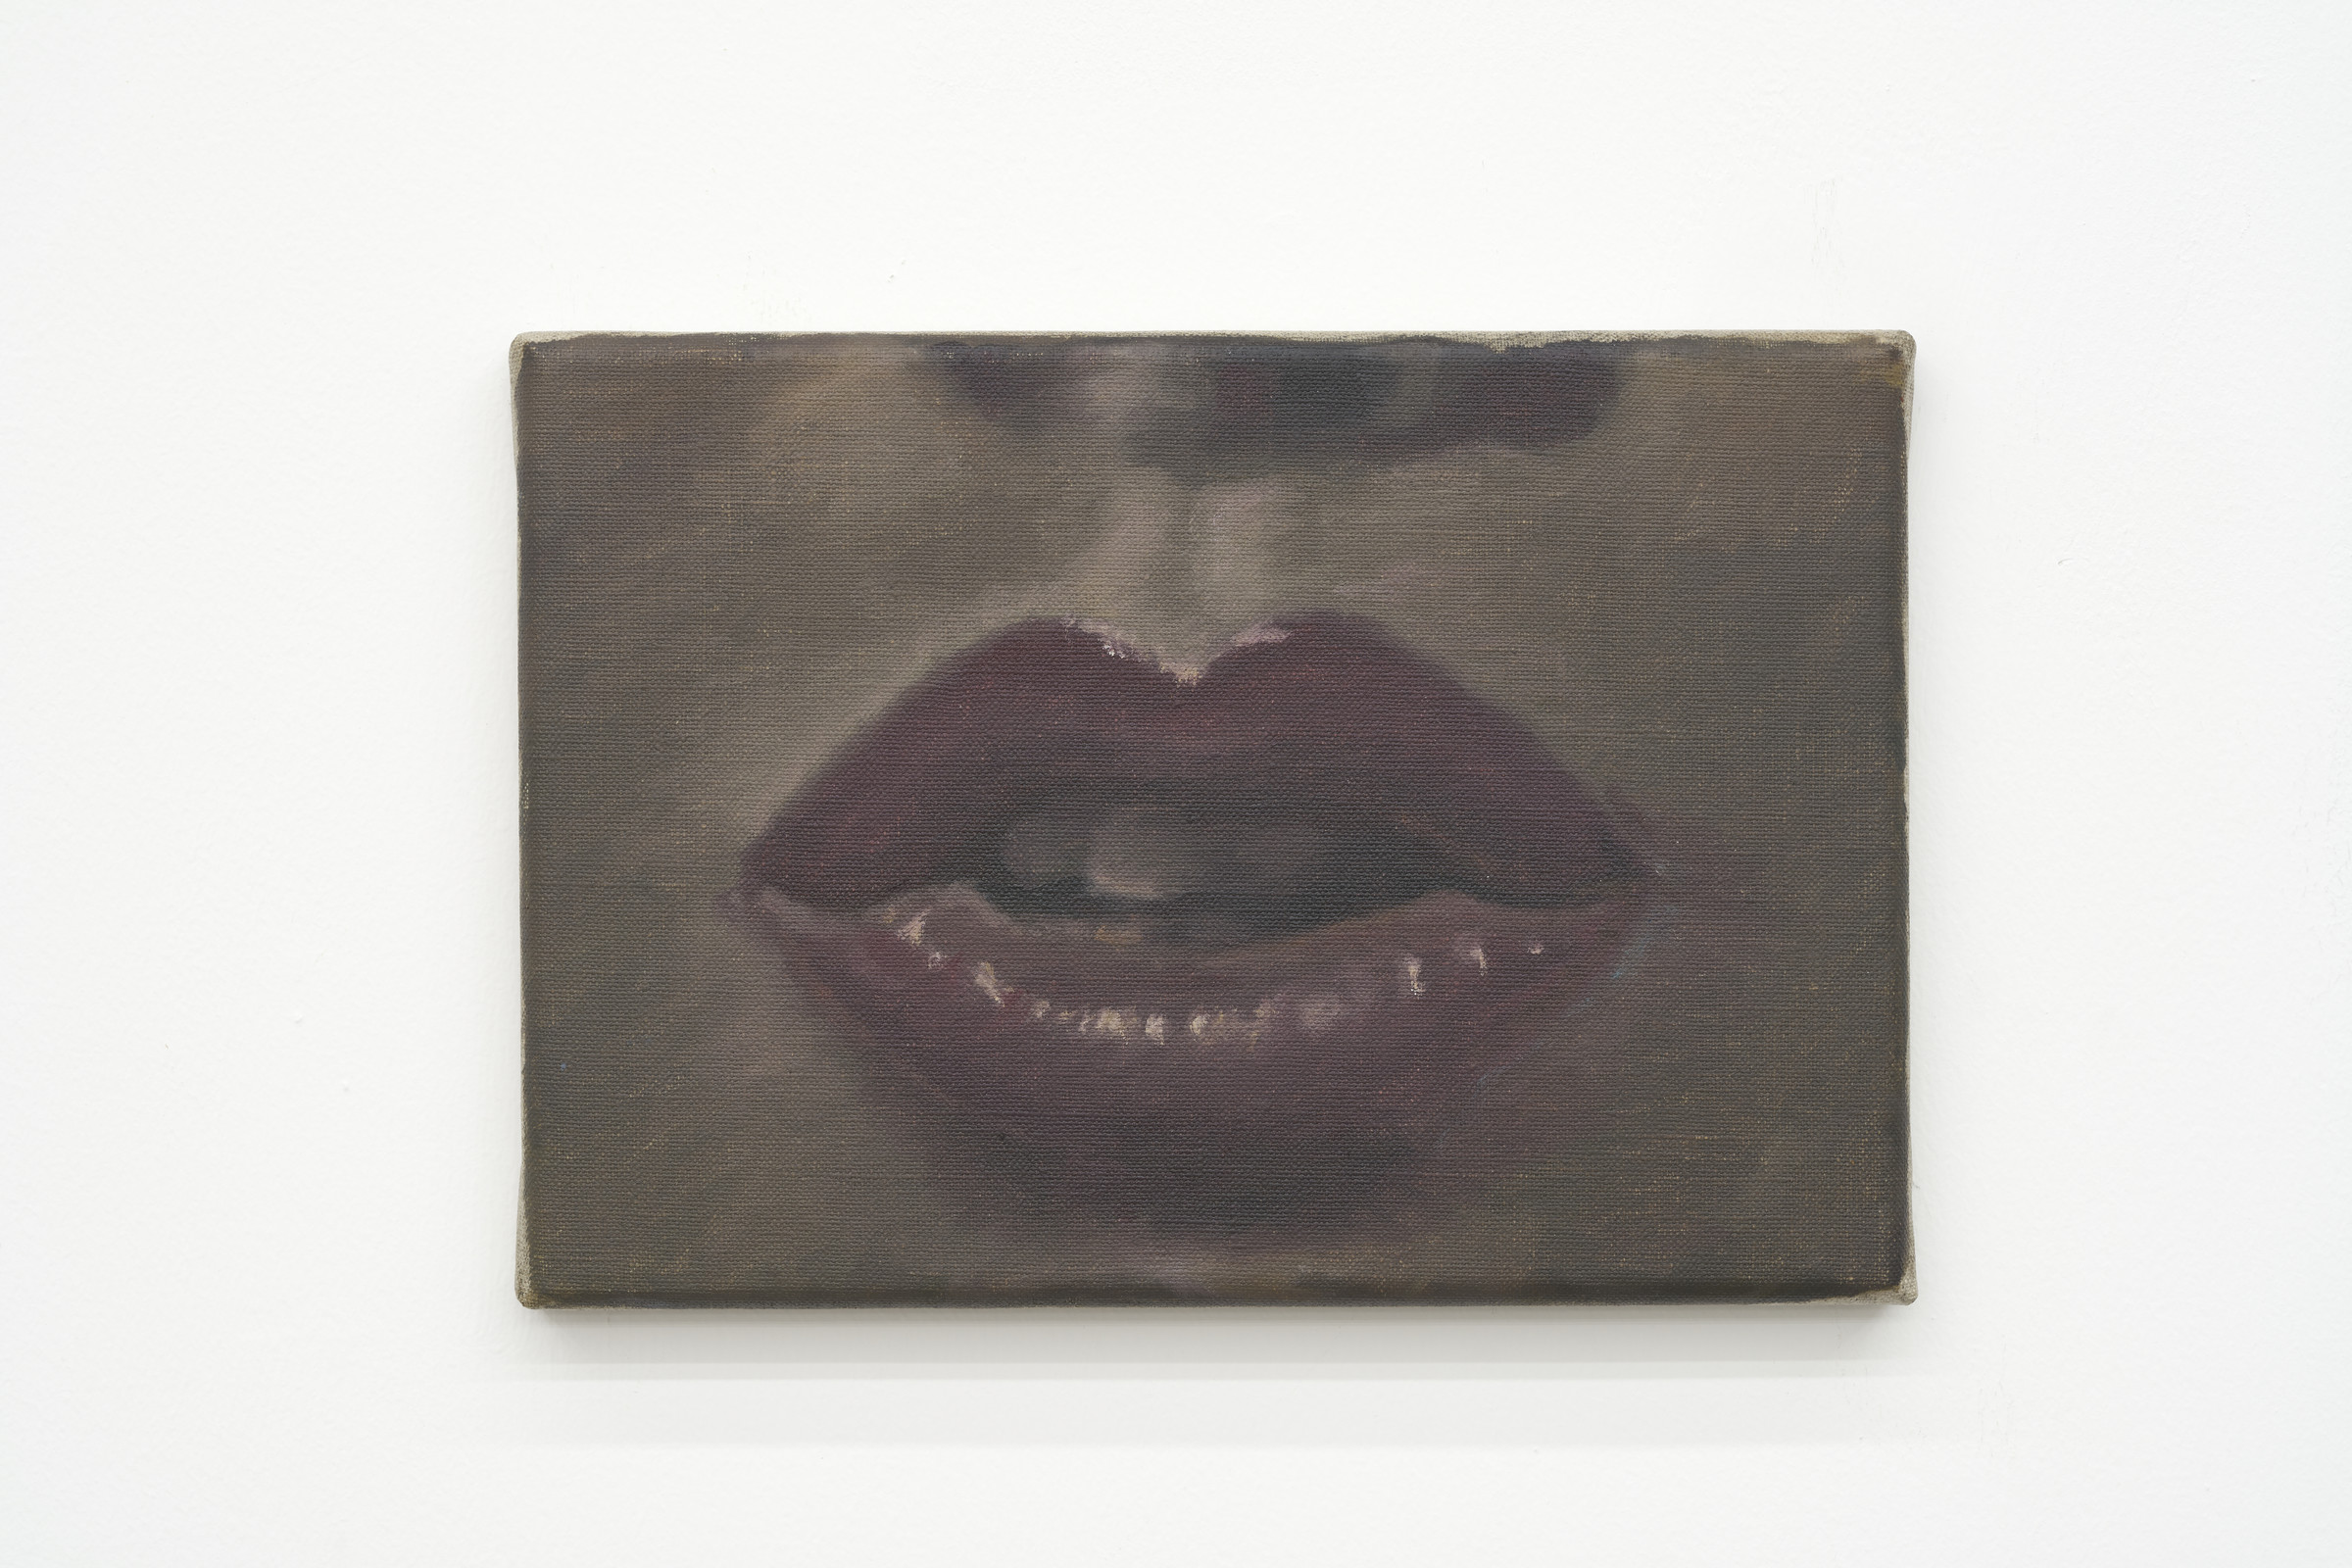 Issy Wood, Untitled (what I want), 2020.